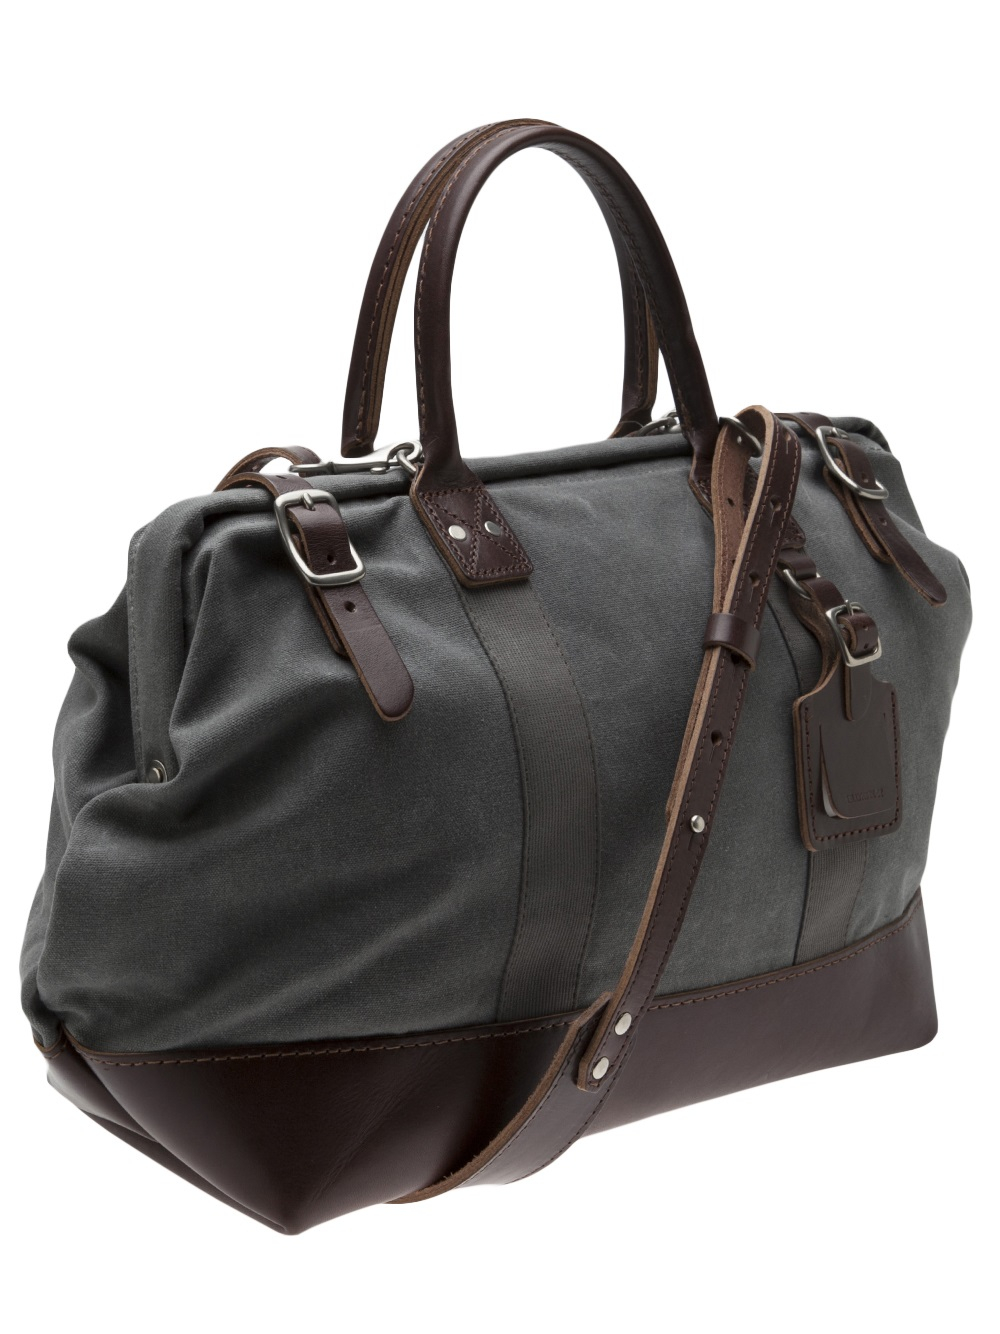 Lyst Billykirk Mason Bag In Gray For Men